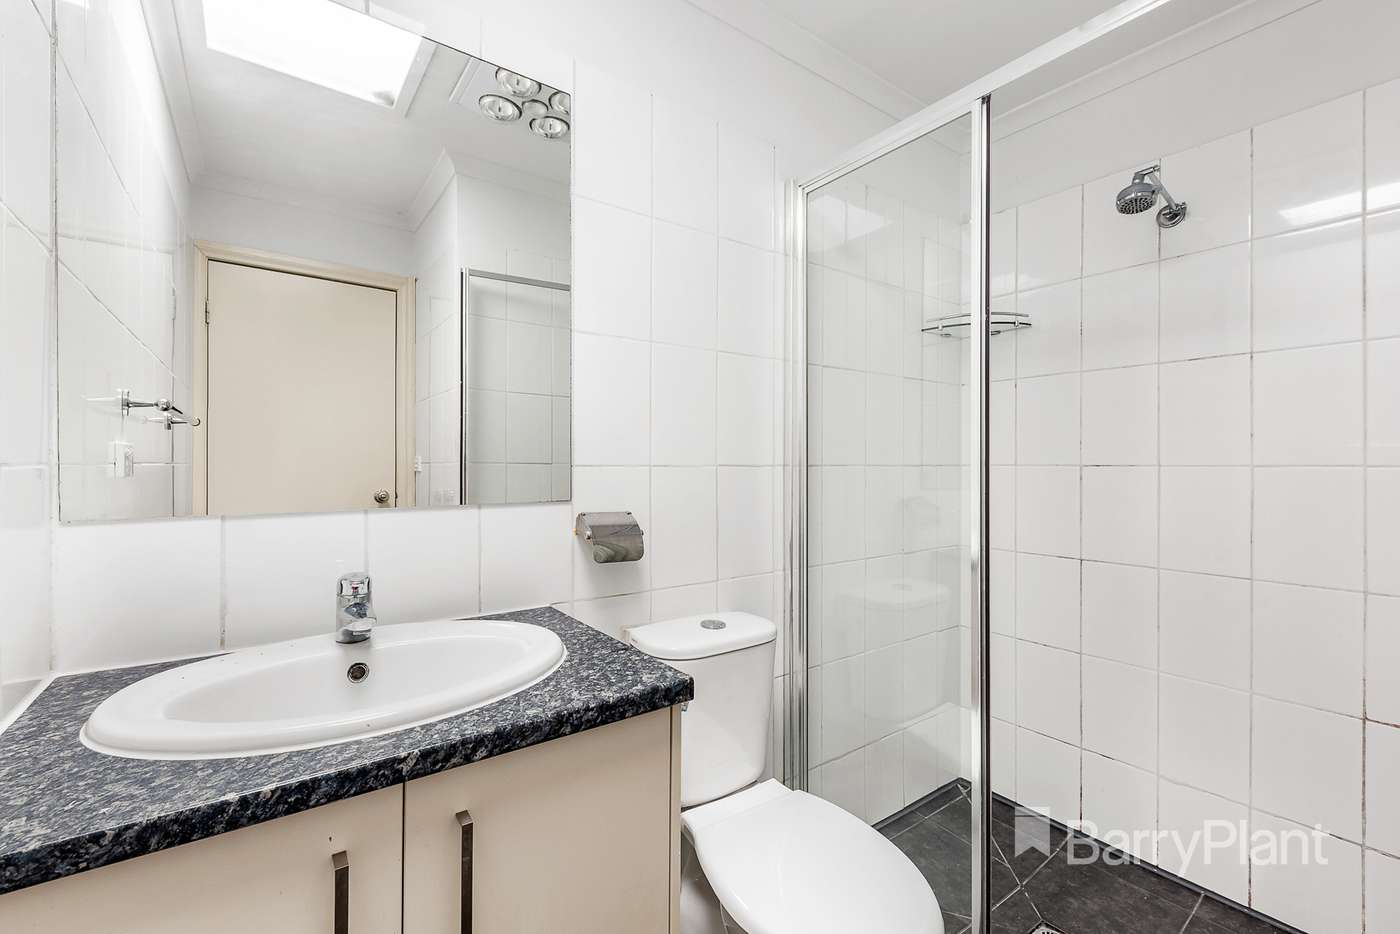 Sixth view of Homely unit listing, 2/51 Lea Road, Mulgrave VIC 3170